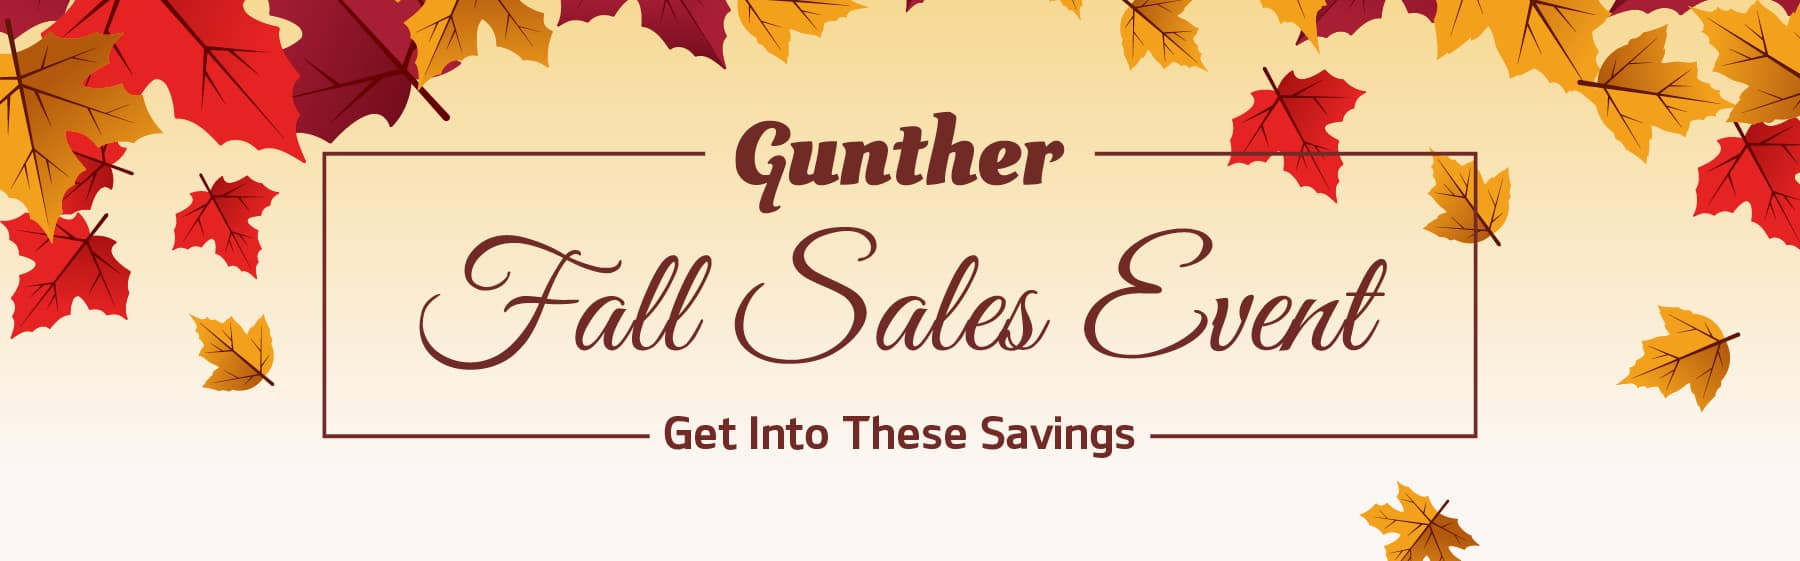 Gunther Fall Sales Event. Get into these savings! View Specials.